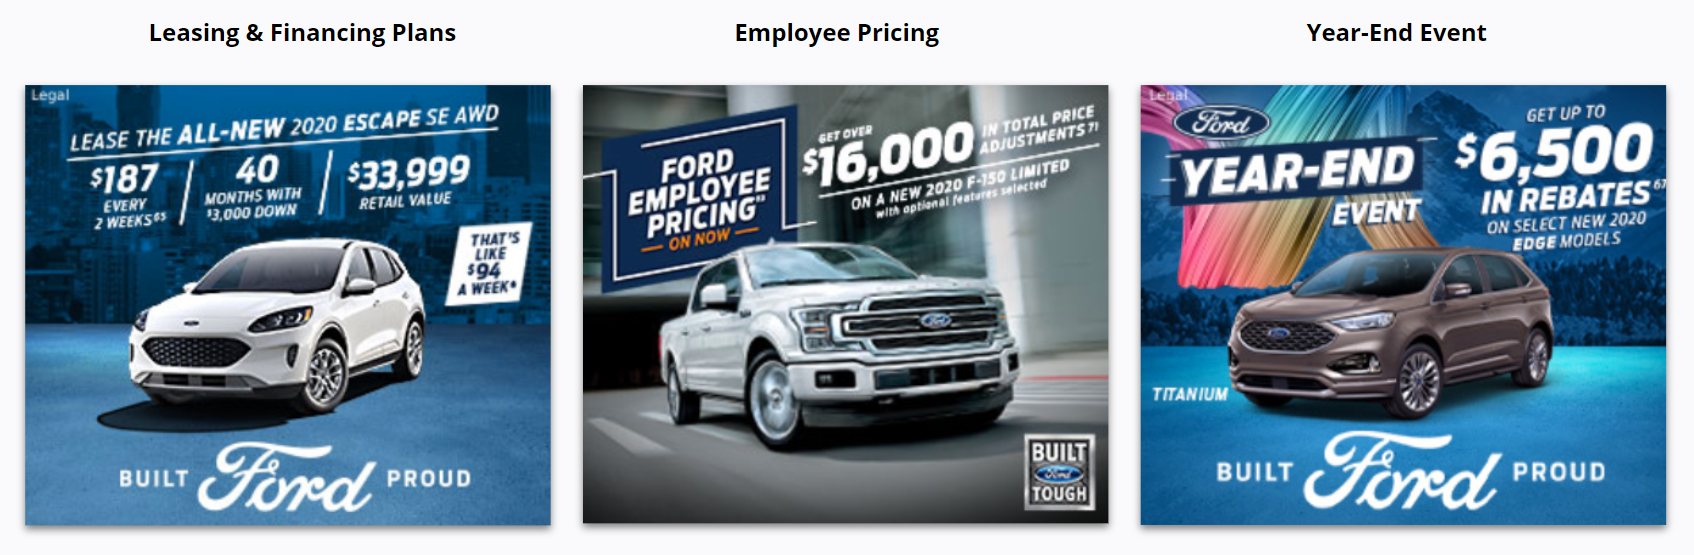 Ford - Top 3 Display Advertising Campaigns